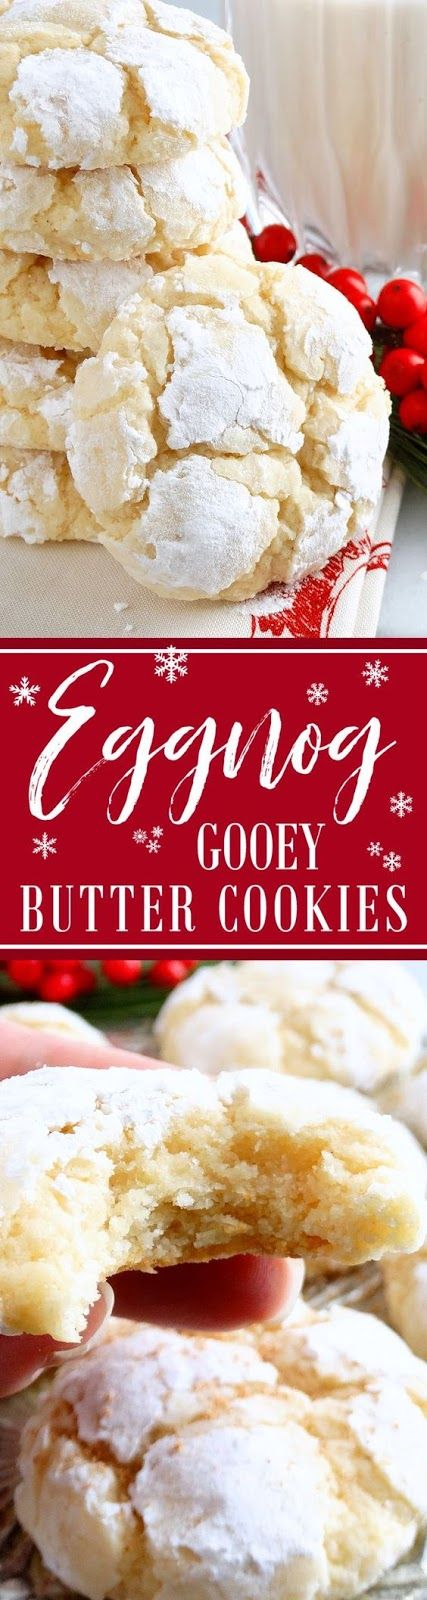 Eggnog Gooey Butter Cookies (from scratch!) ~ Melt-in-your-mouth Eggnog Gooey Butter Cookies at their finest and from scratch. Buttery, light and tender-crumbed, sweetened just right and full of classic eggnog flavors of rum or bourbon and nutmeg with a whisper of cinnamon. You just can't have one! Included is a scrumptious and irresistible gluten free variation. Everyone will love these…they are pure Christmas deliciousness!